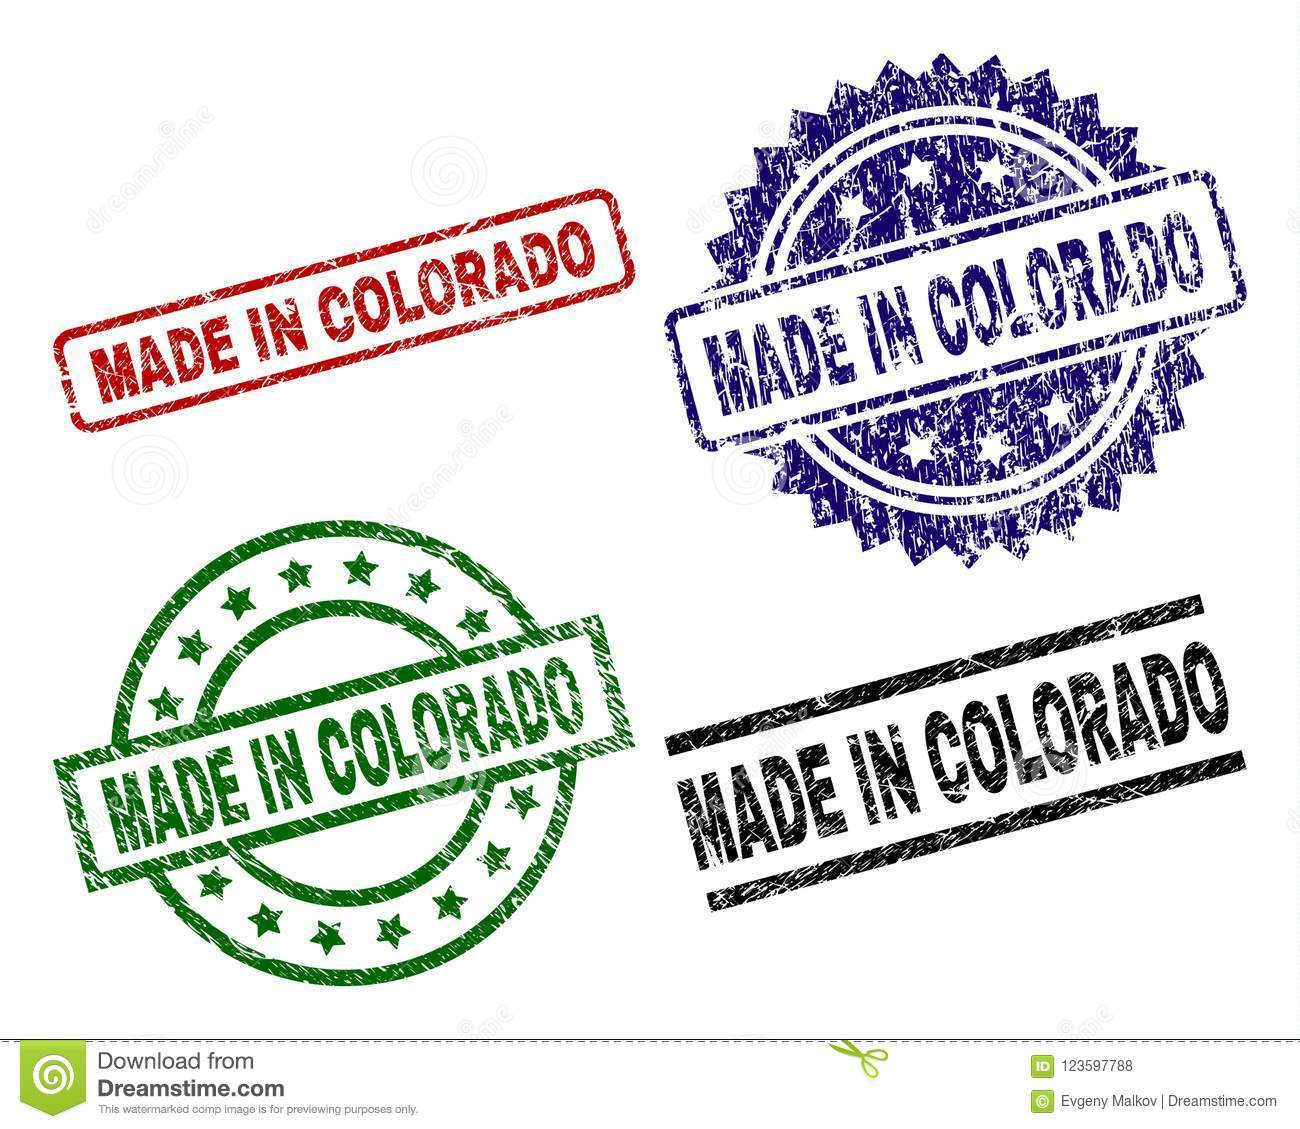 Scratched Textured MADE IN COLORADO Stamp Seals